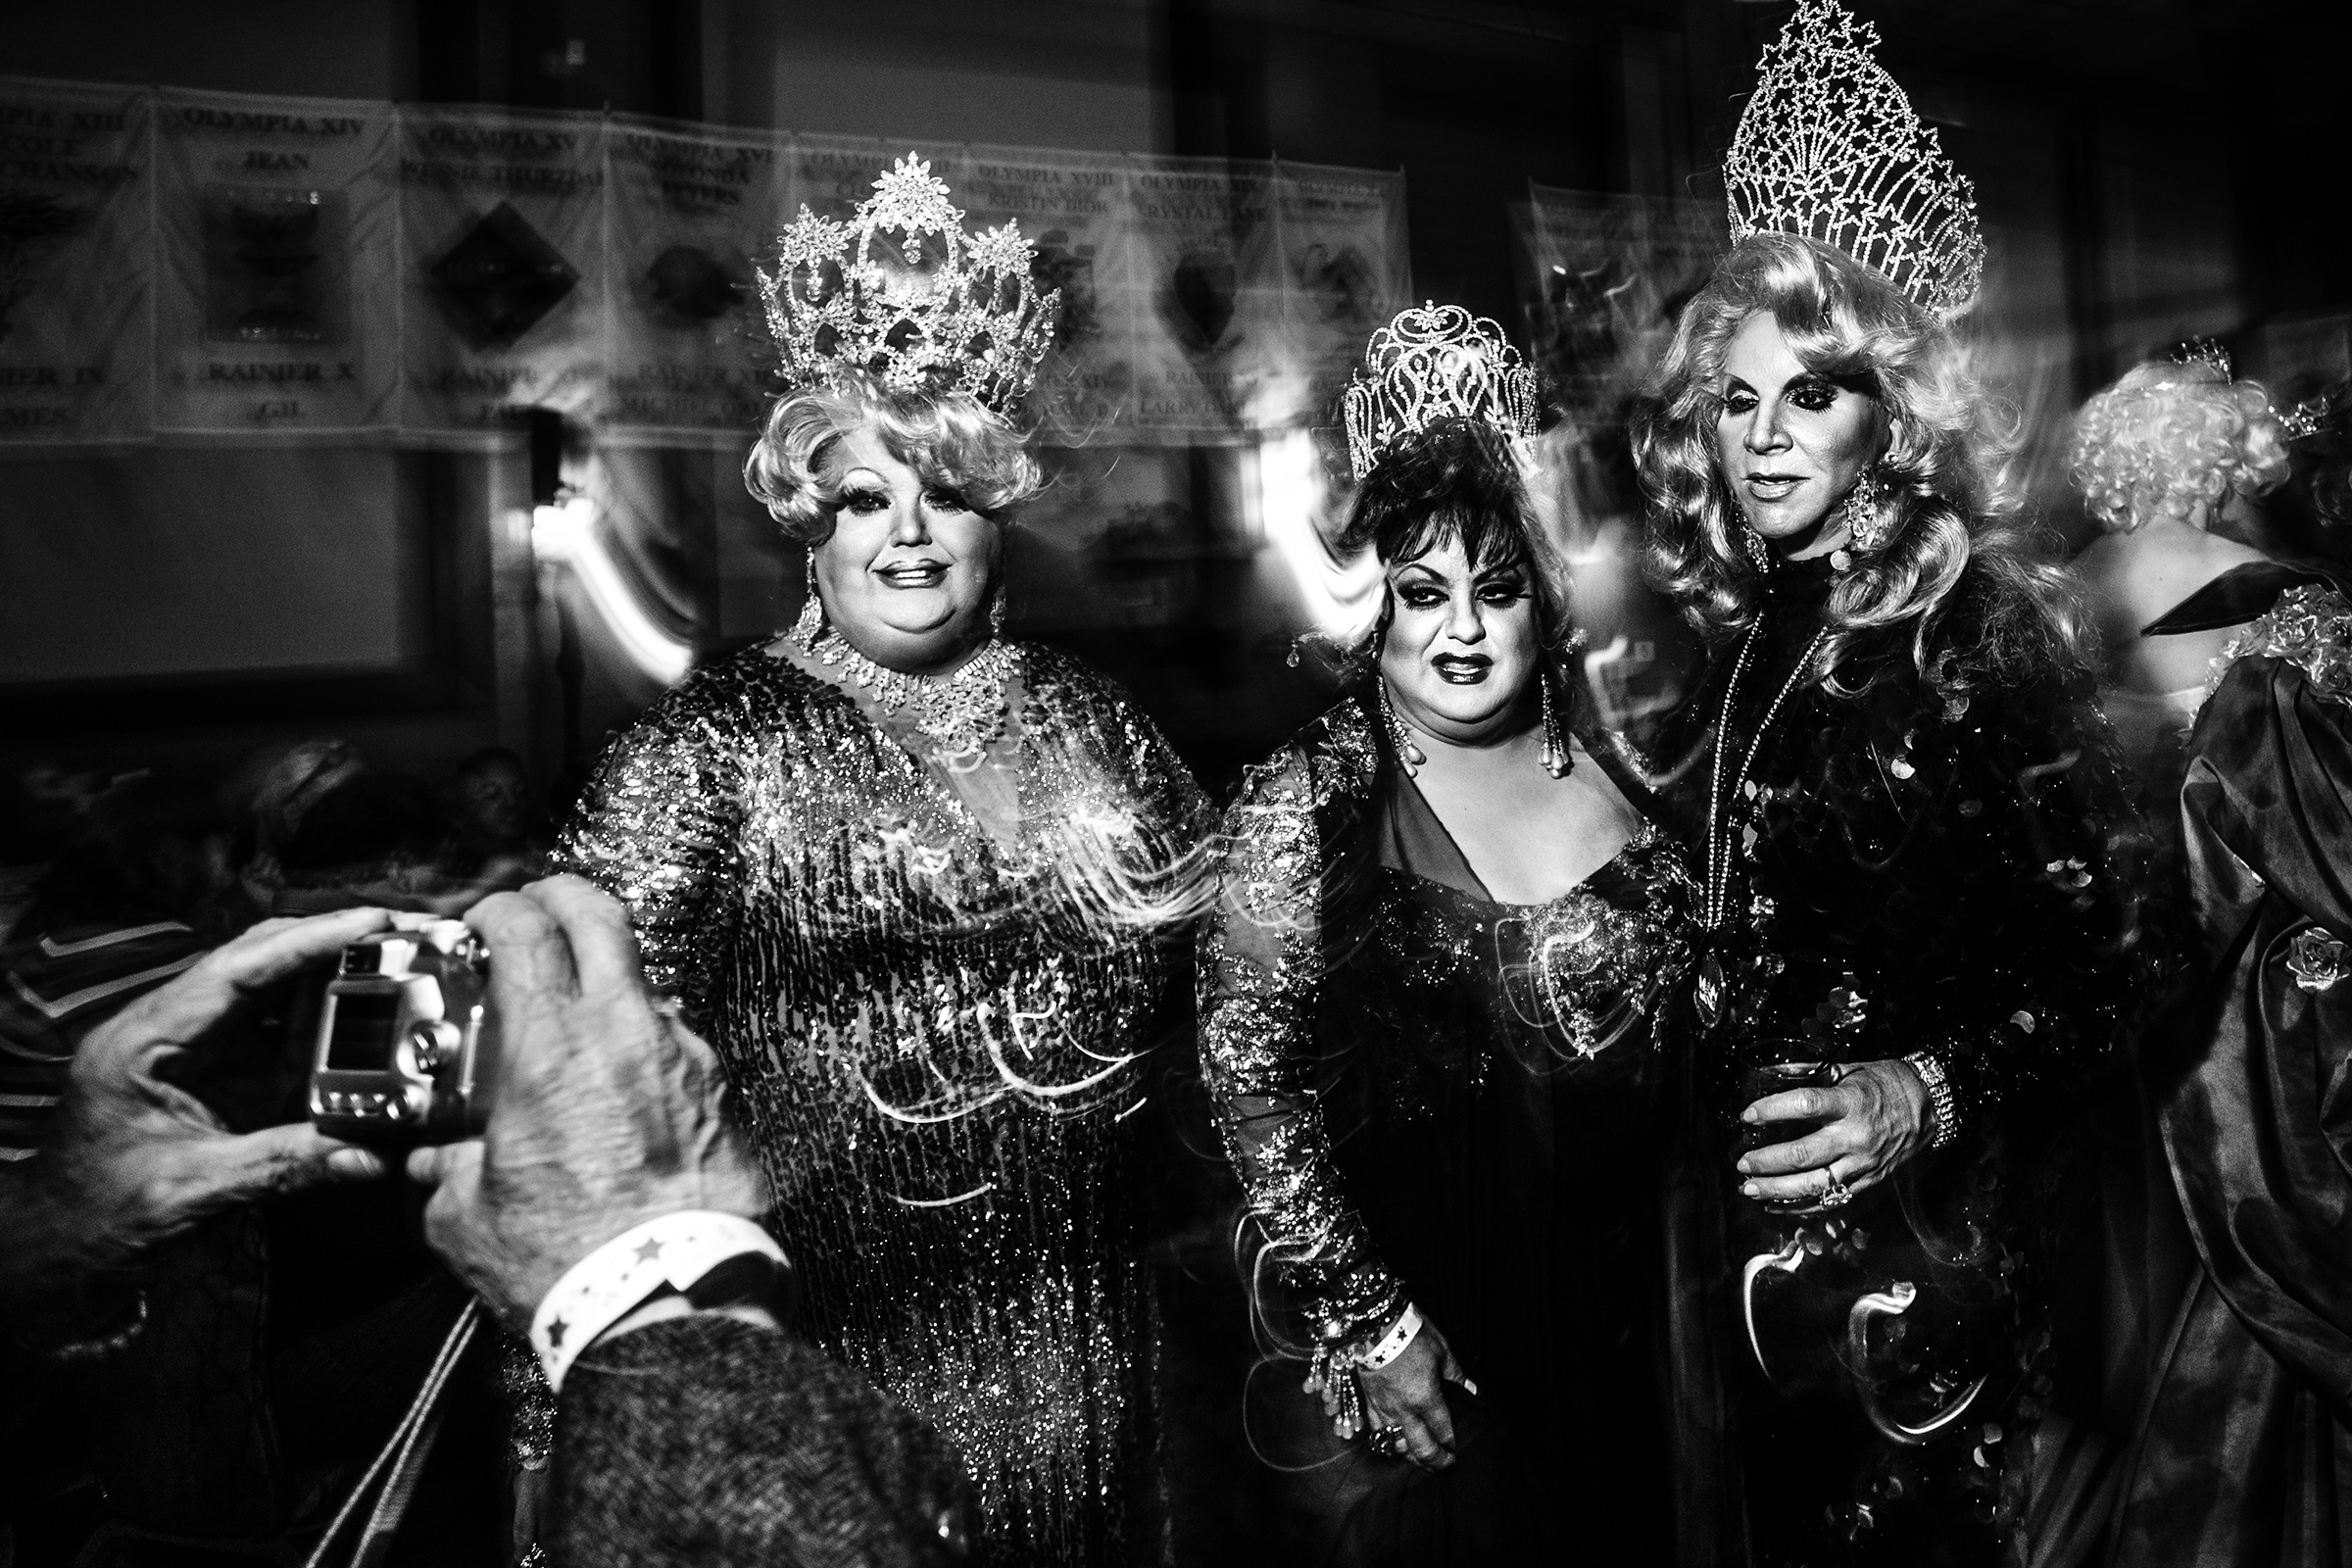 Female impersonators dress in their finest ball gowns at the Imperial Sovereign Court of Seattle's annual Coronation at the Renaissance Ballroom on February 7th, 2015, in Seattle.